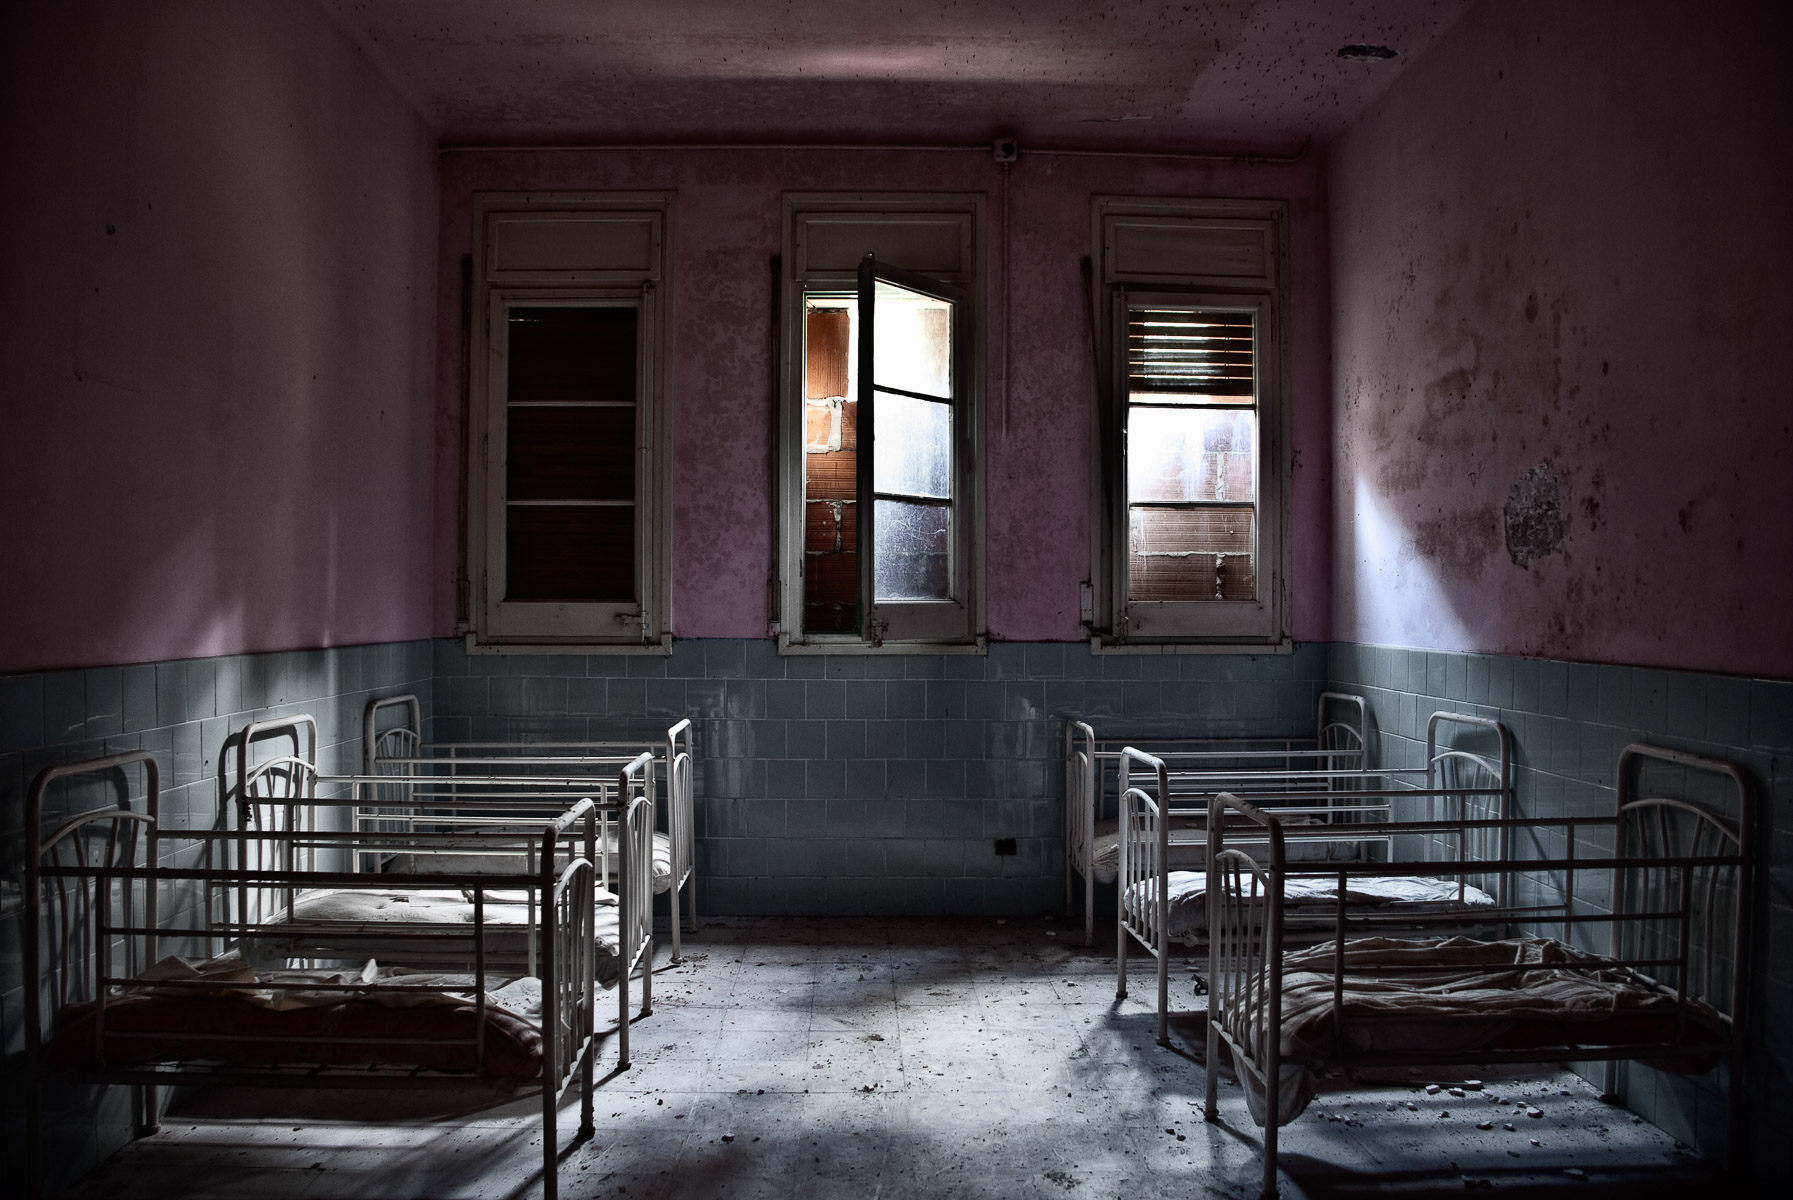 abandoned-places-in-europe-alicia-rius-photography-3.jpg